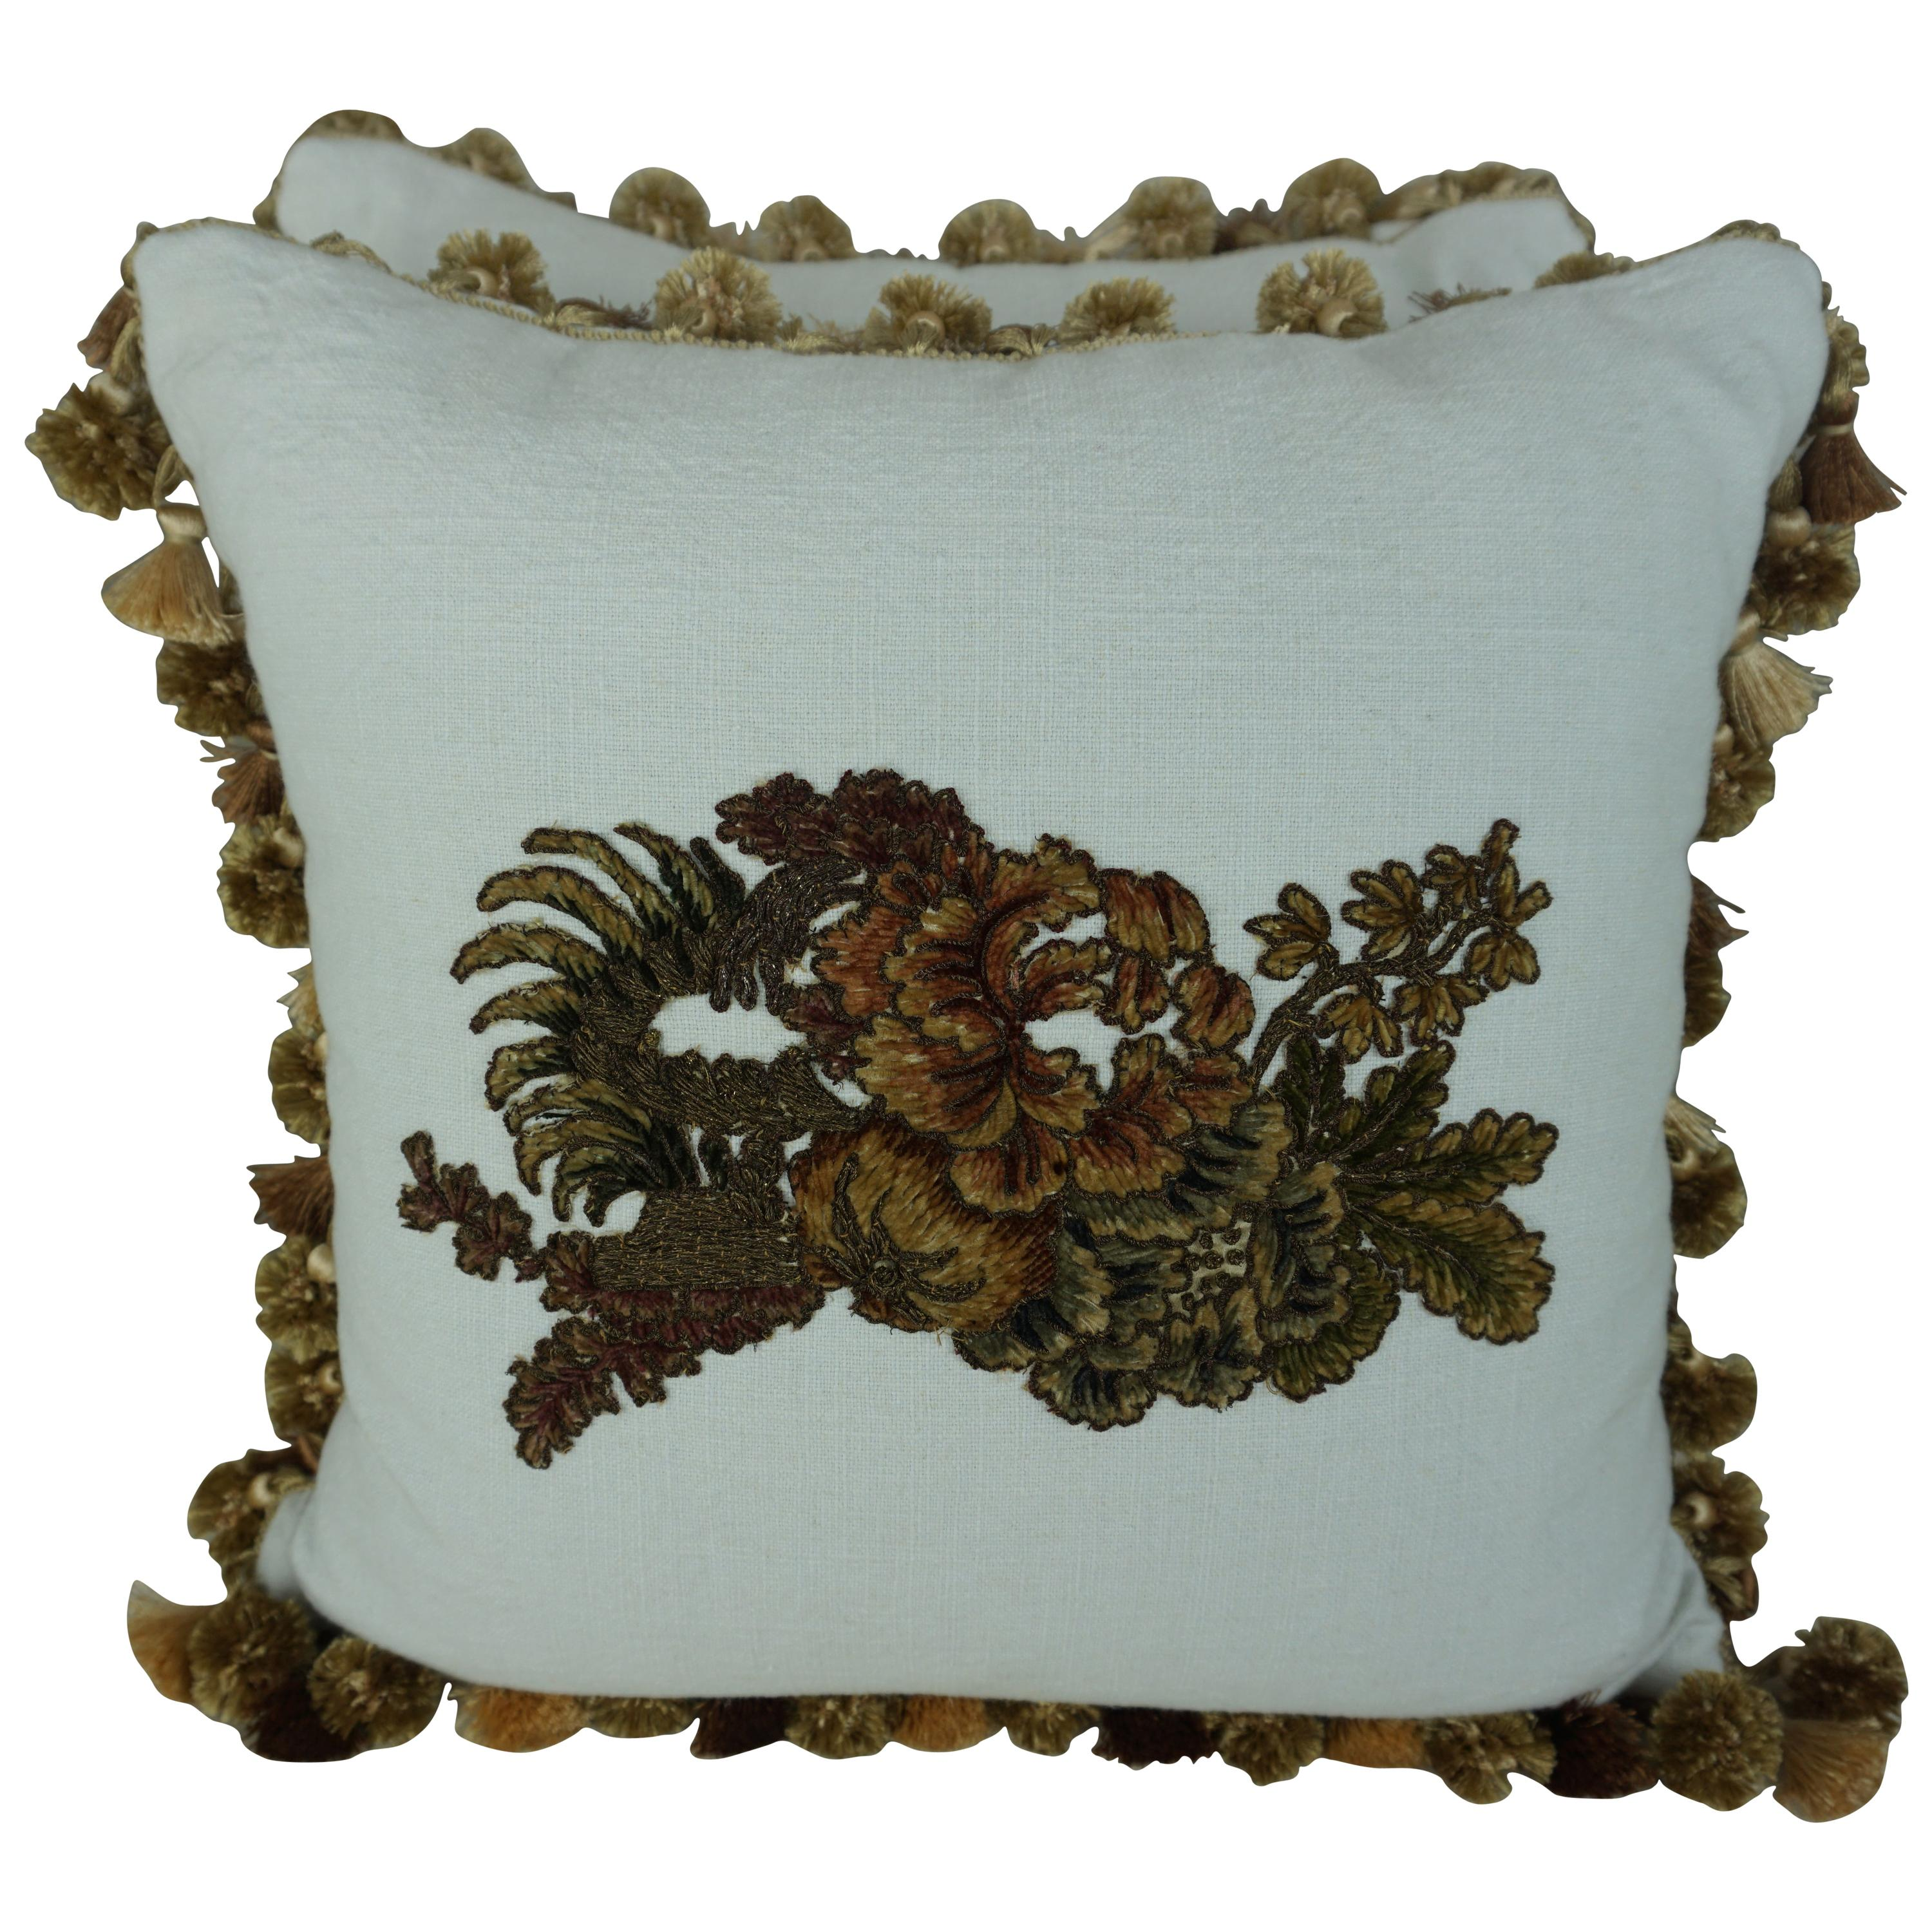 Metallic and Chenille Floral Appliqued Linen Pillows by Melissa Levinson